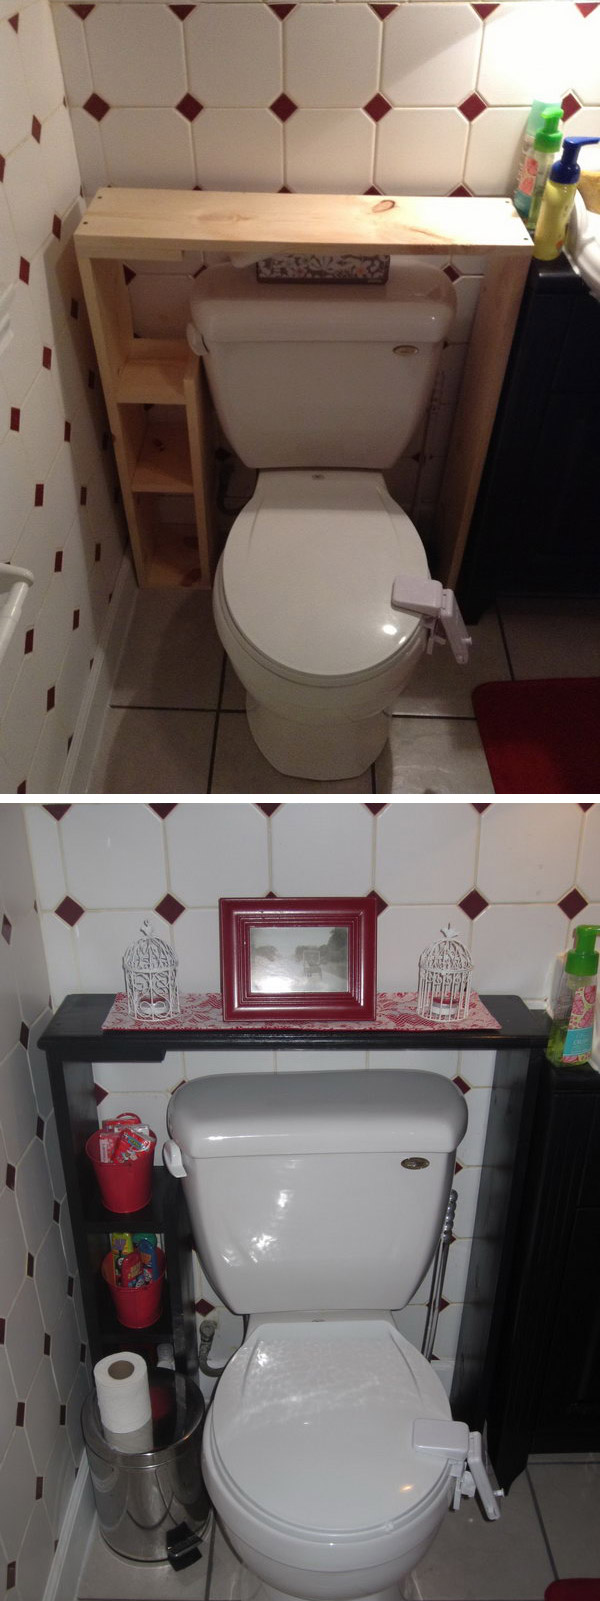 DIY Shelf Over The Toilet For More Storage Space.